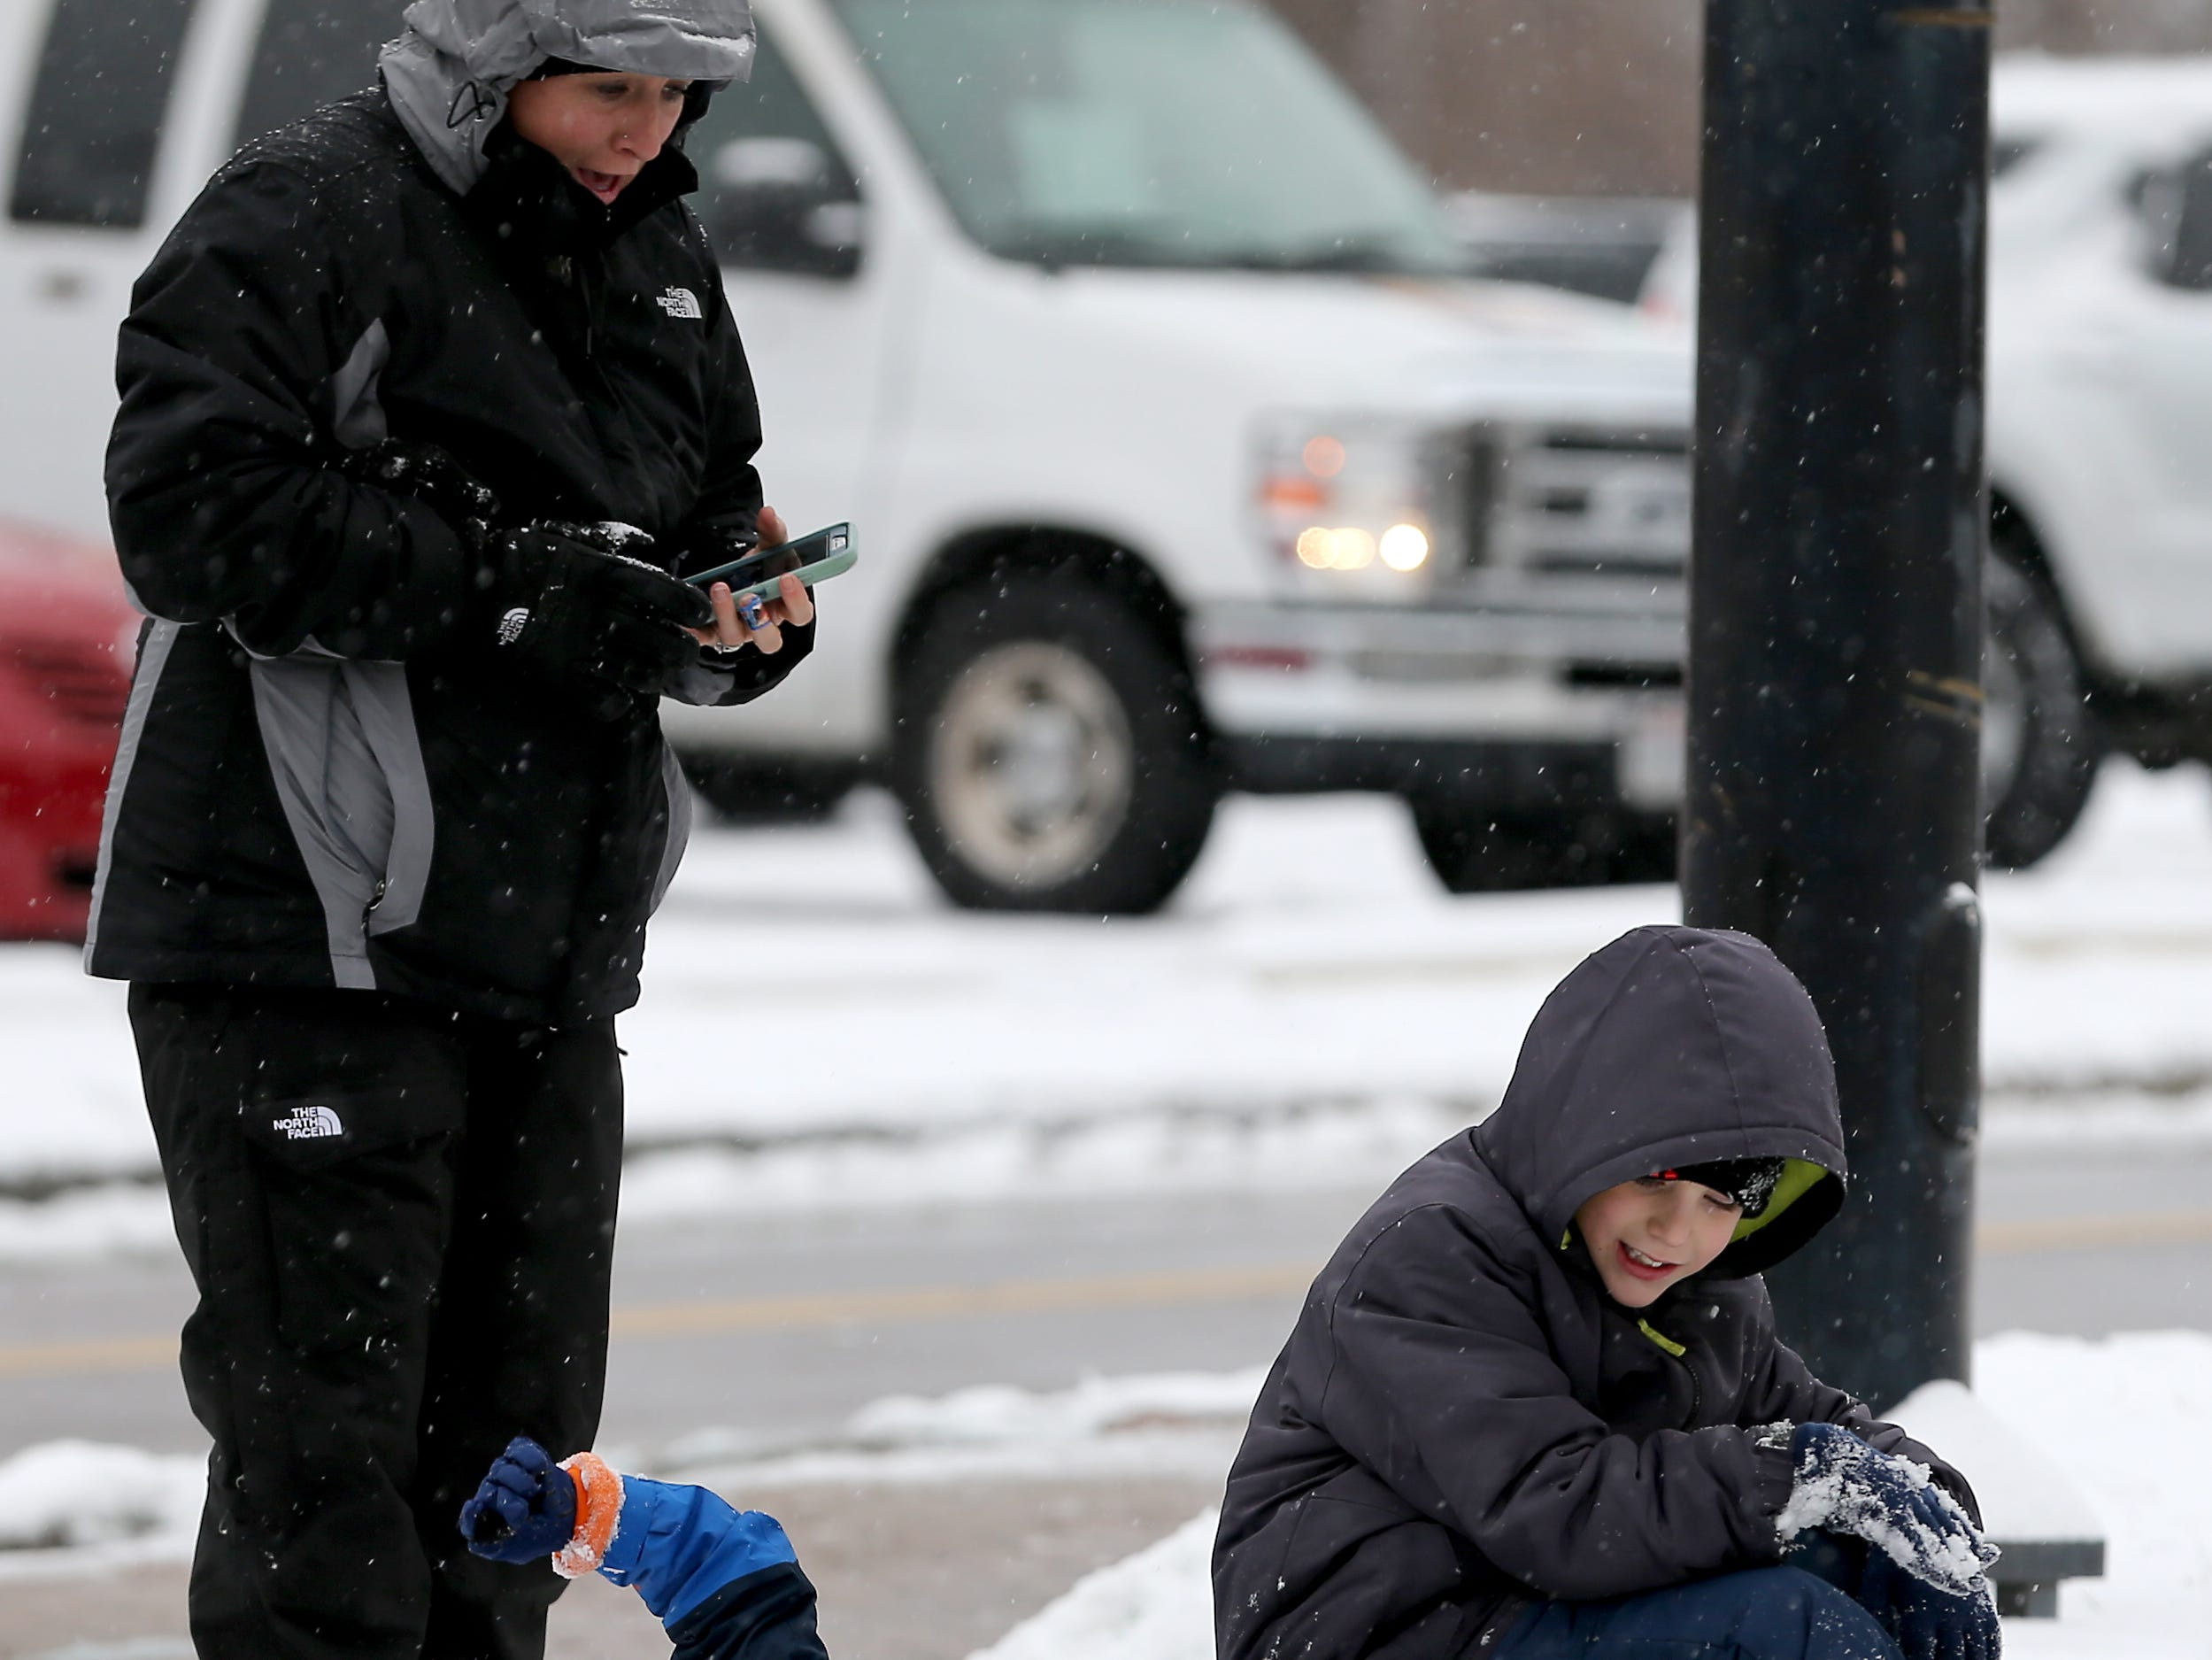 Two children play in the snow before the procession for Colerain Township Police Officer Dale Woods passes through North College Hill along Galbraith Road, Saturday, Jan. 12, 2019, in North College Hill, Ohio. Woods, 46, who died Monday after being hit by a pickup truck Jan. 4 while working at the scene of a crash.